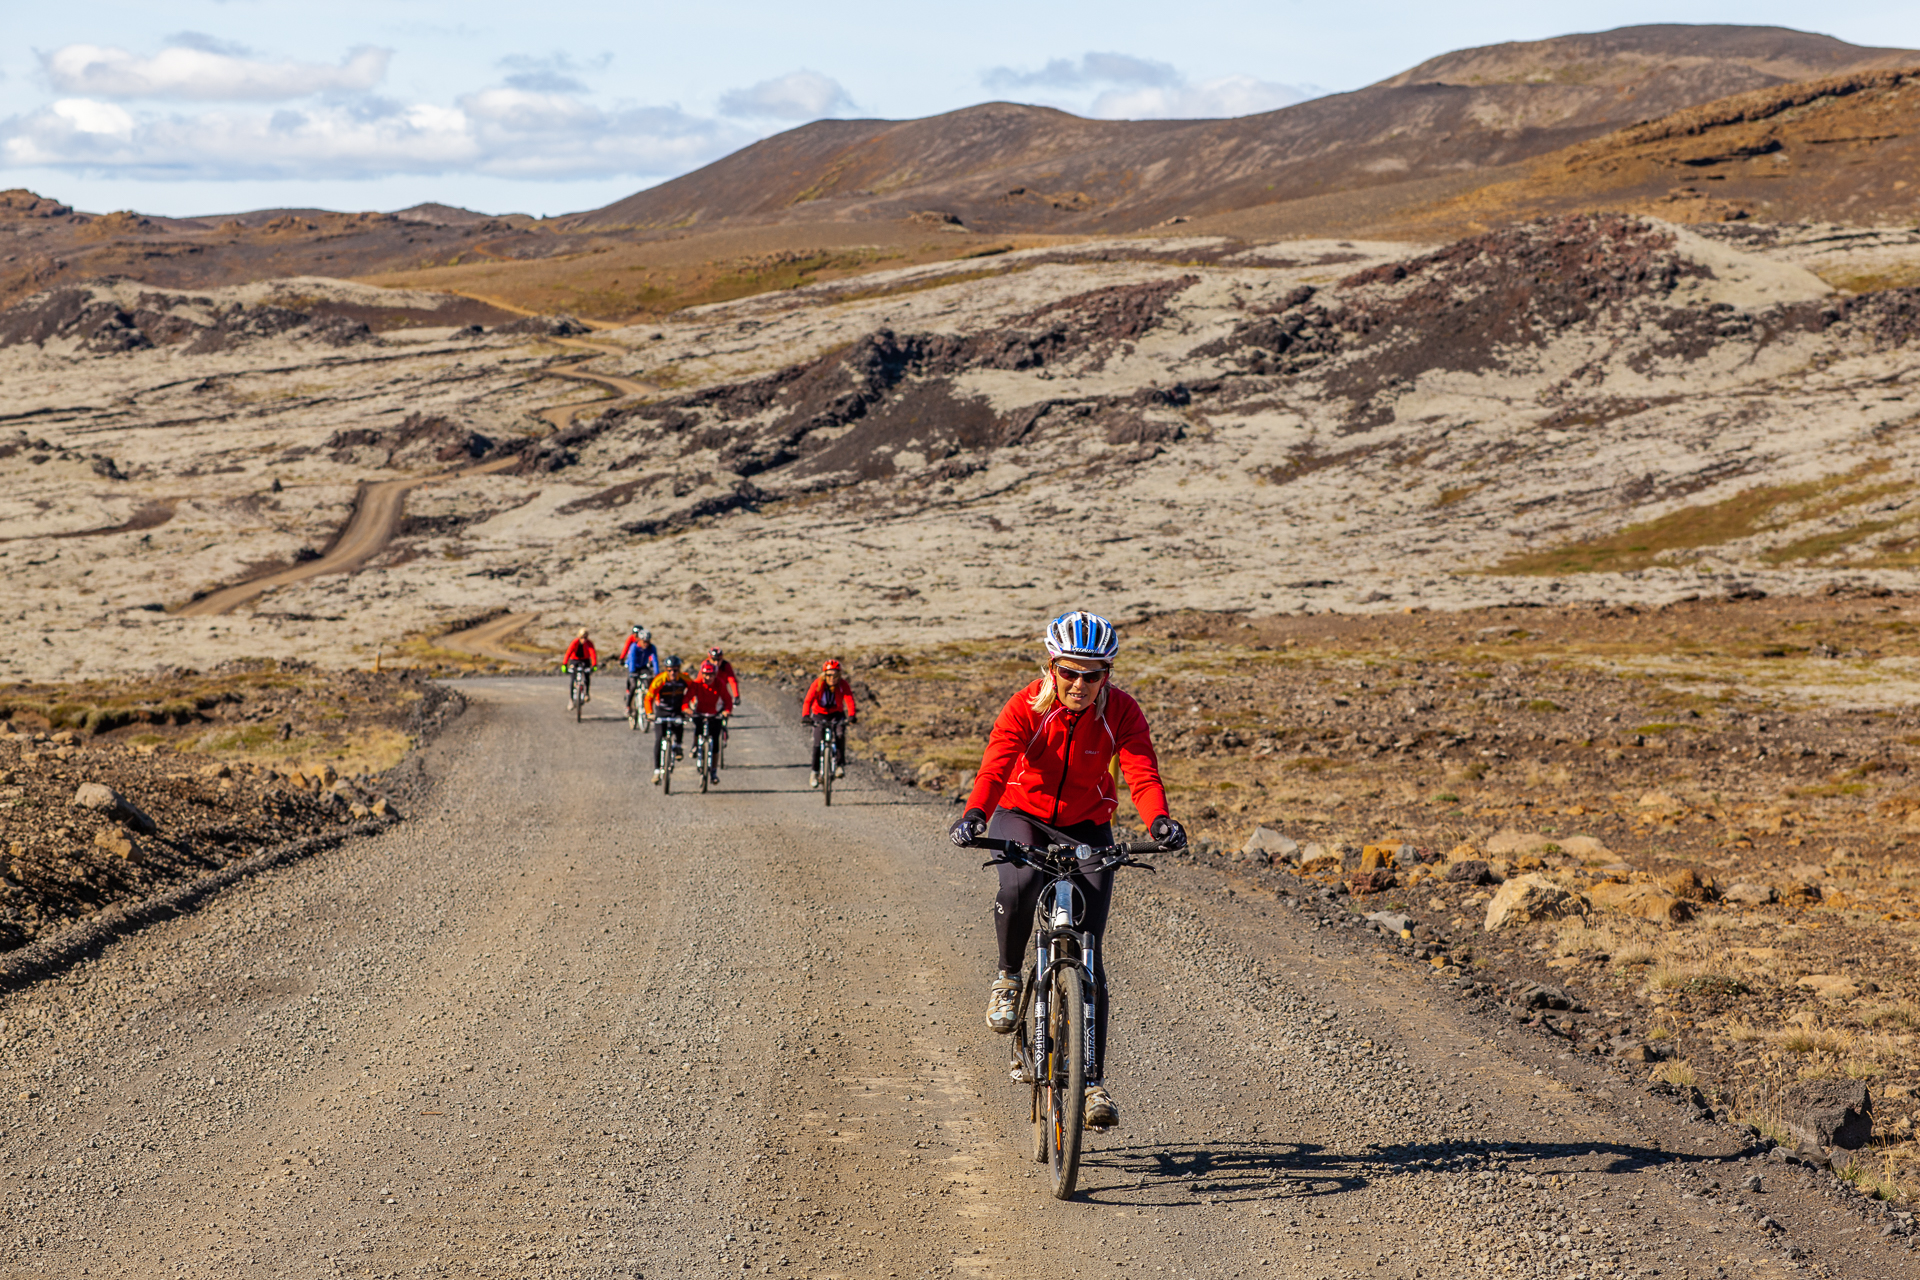 Mountain biking through lava flows